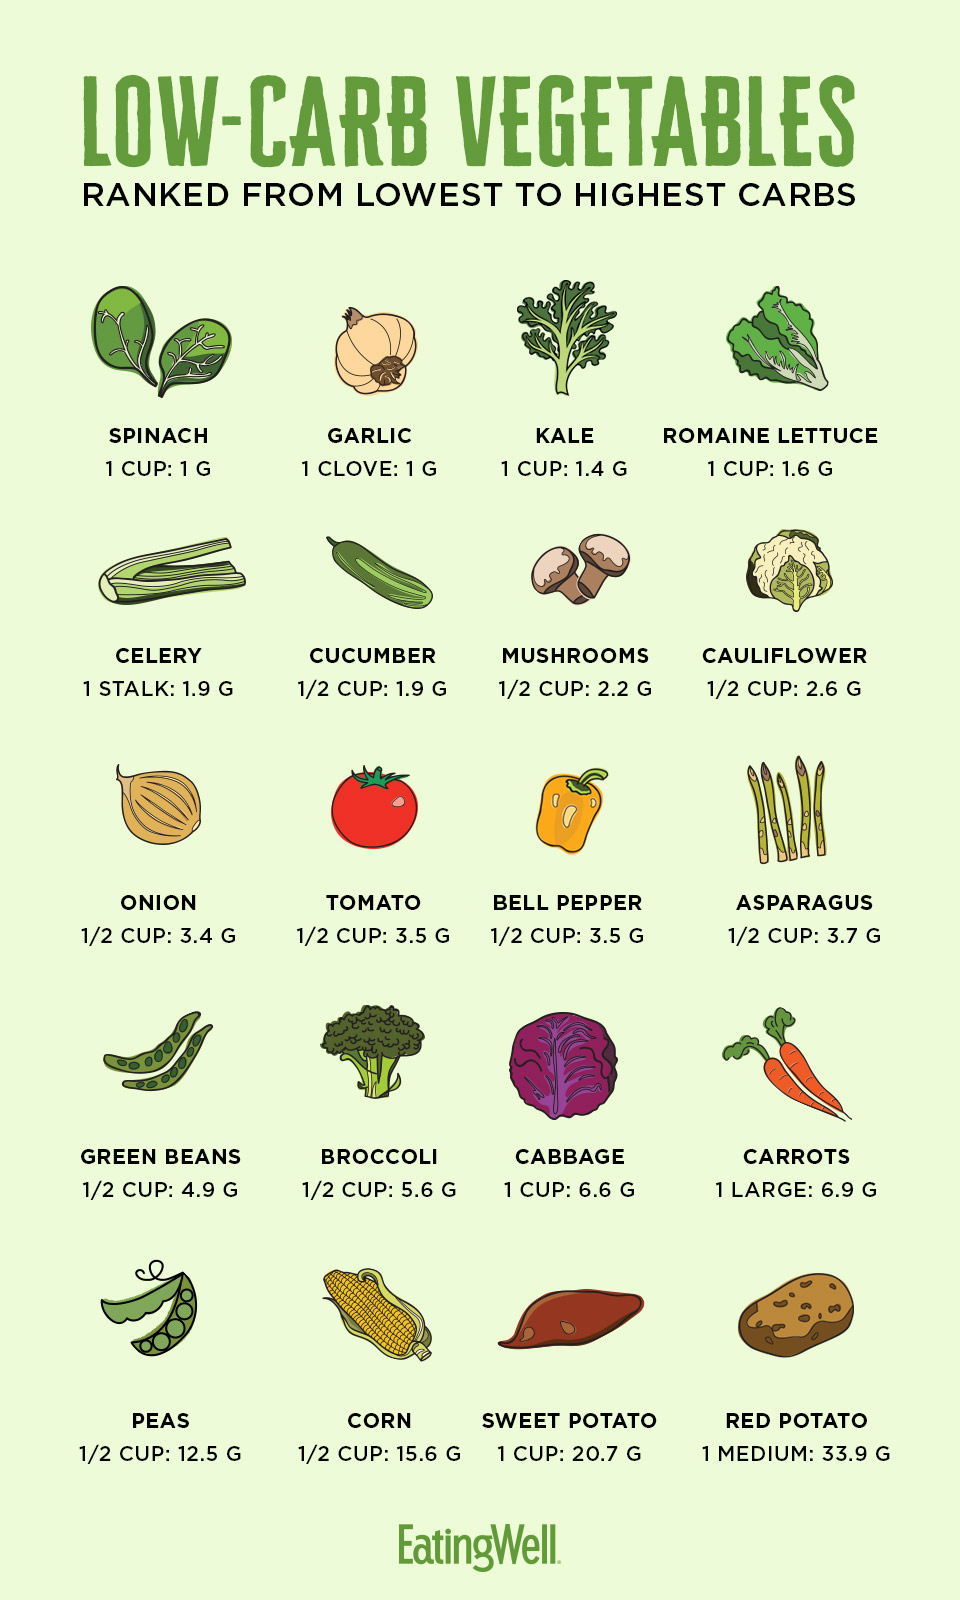 How Many Carbs Are in Vegetables?